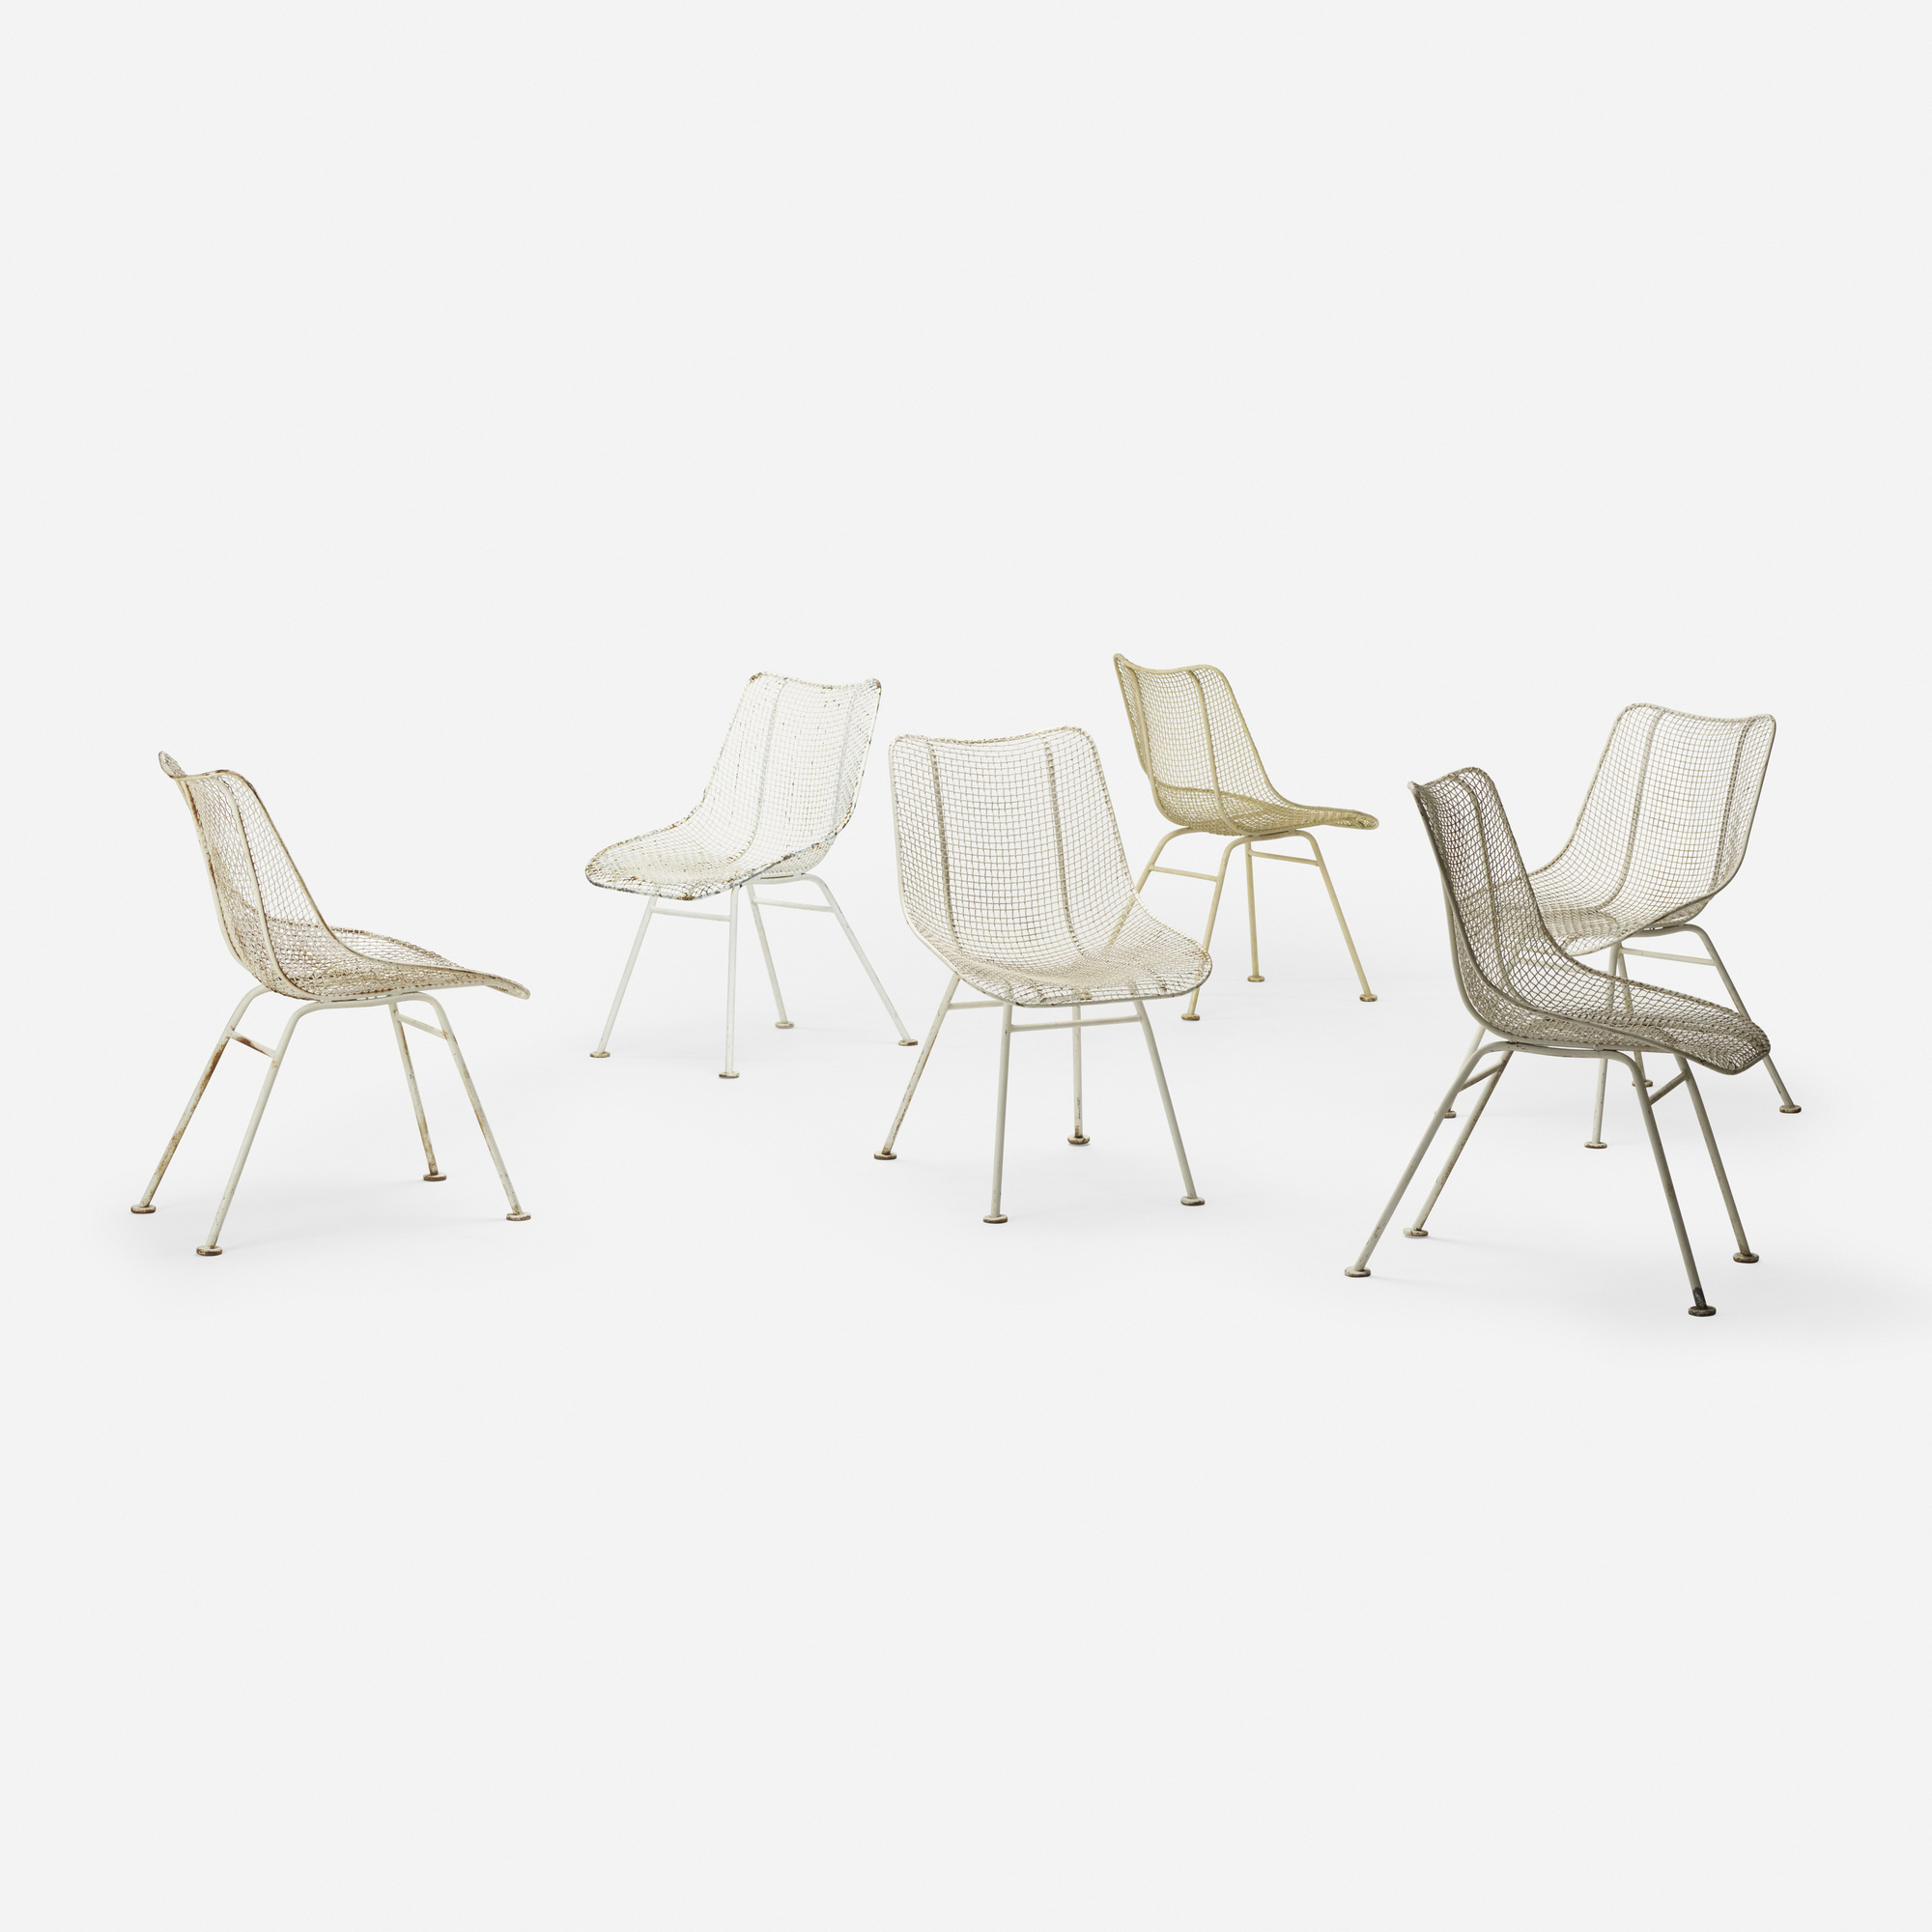 350: Russell Woodard / Sculptura dining chairs, set of six (2 of 3)